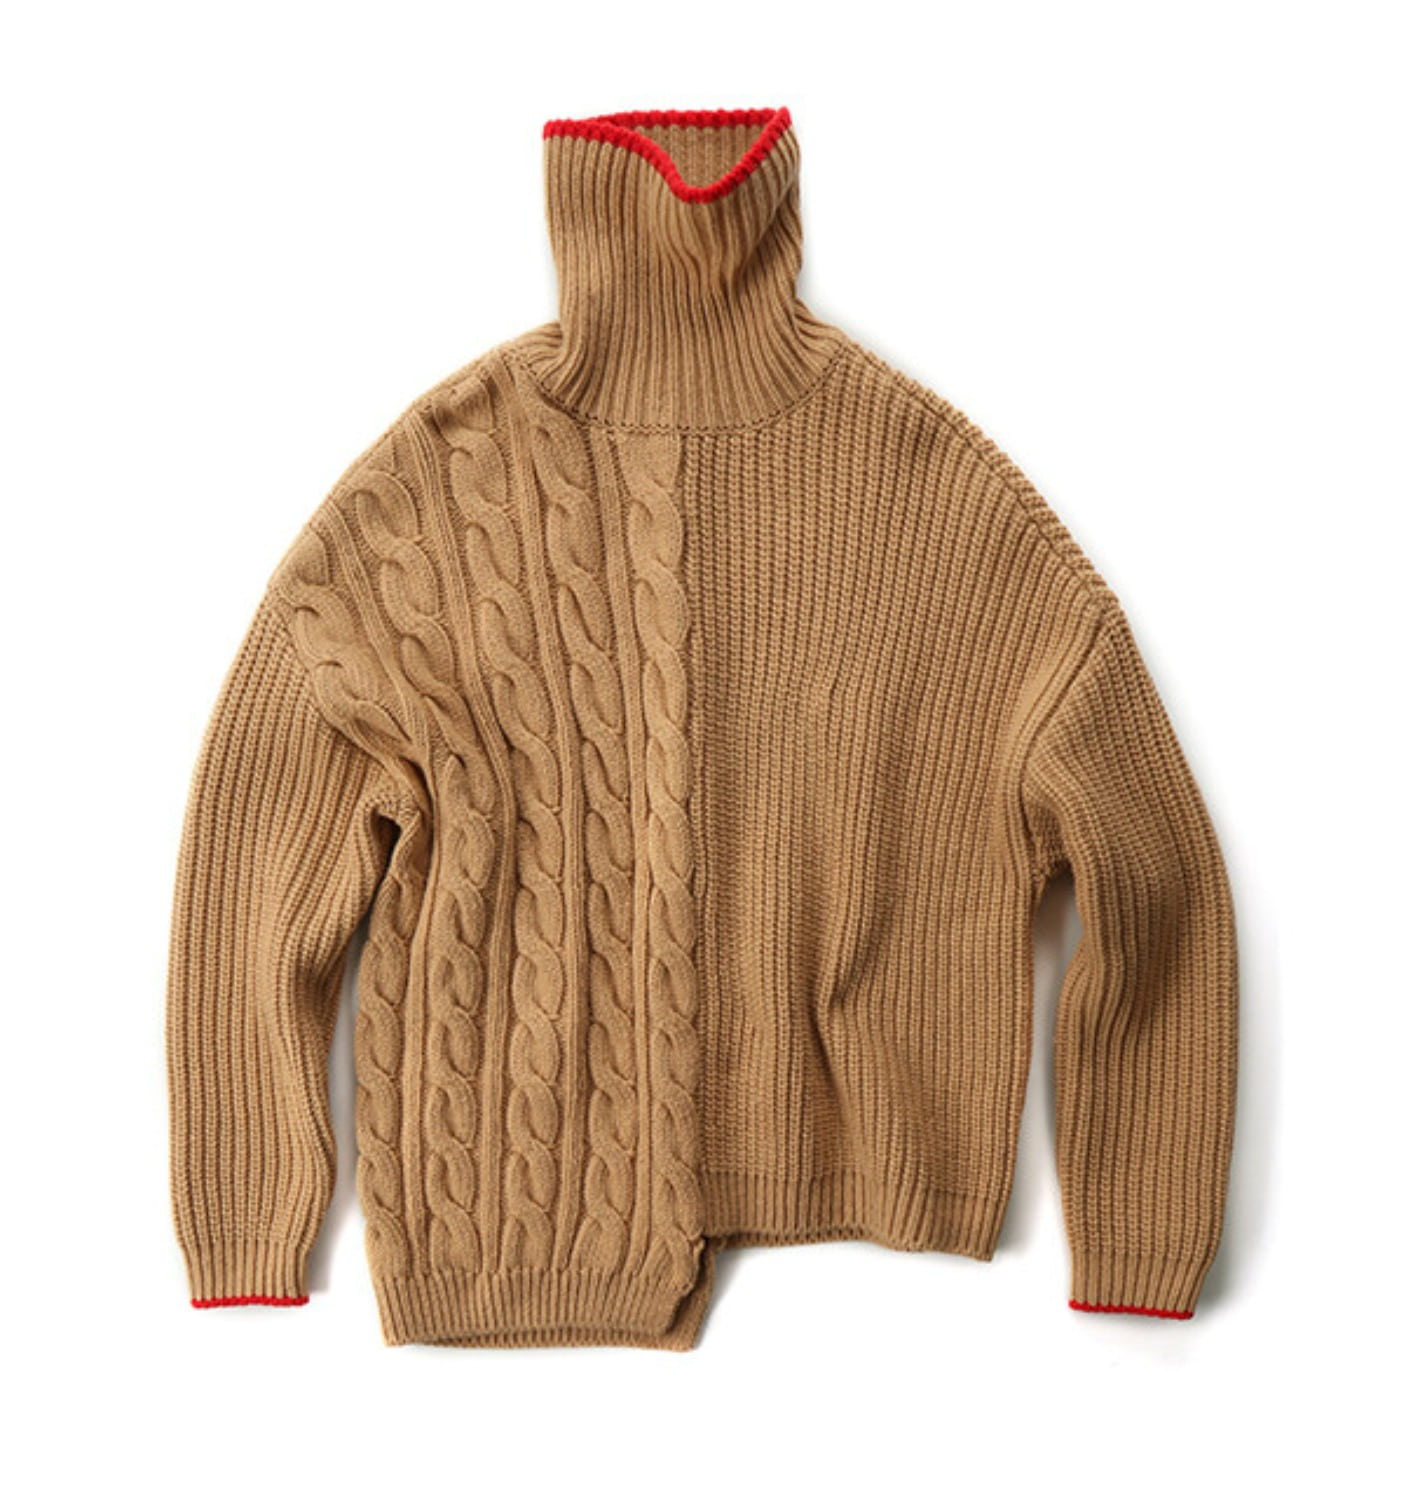 TRES UNBALANCED TURTLENECK SWEATER CAMEL+RED (MDS07KN02)